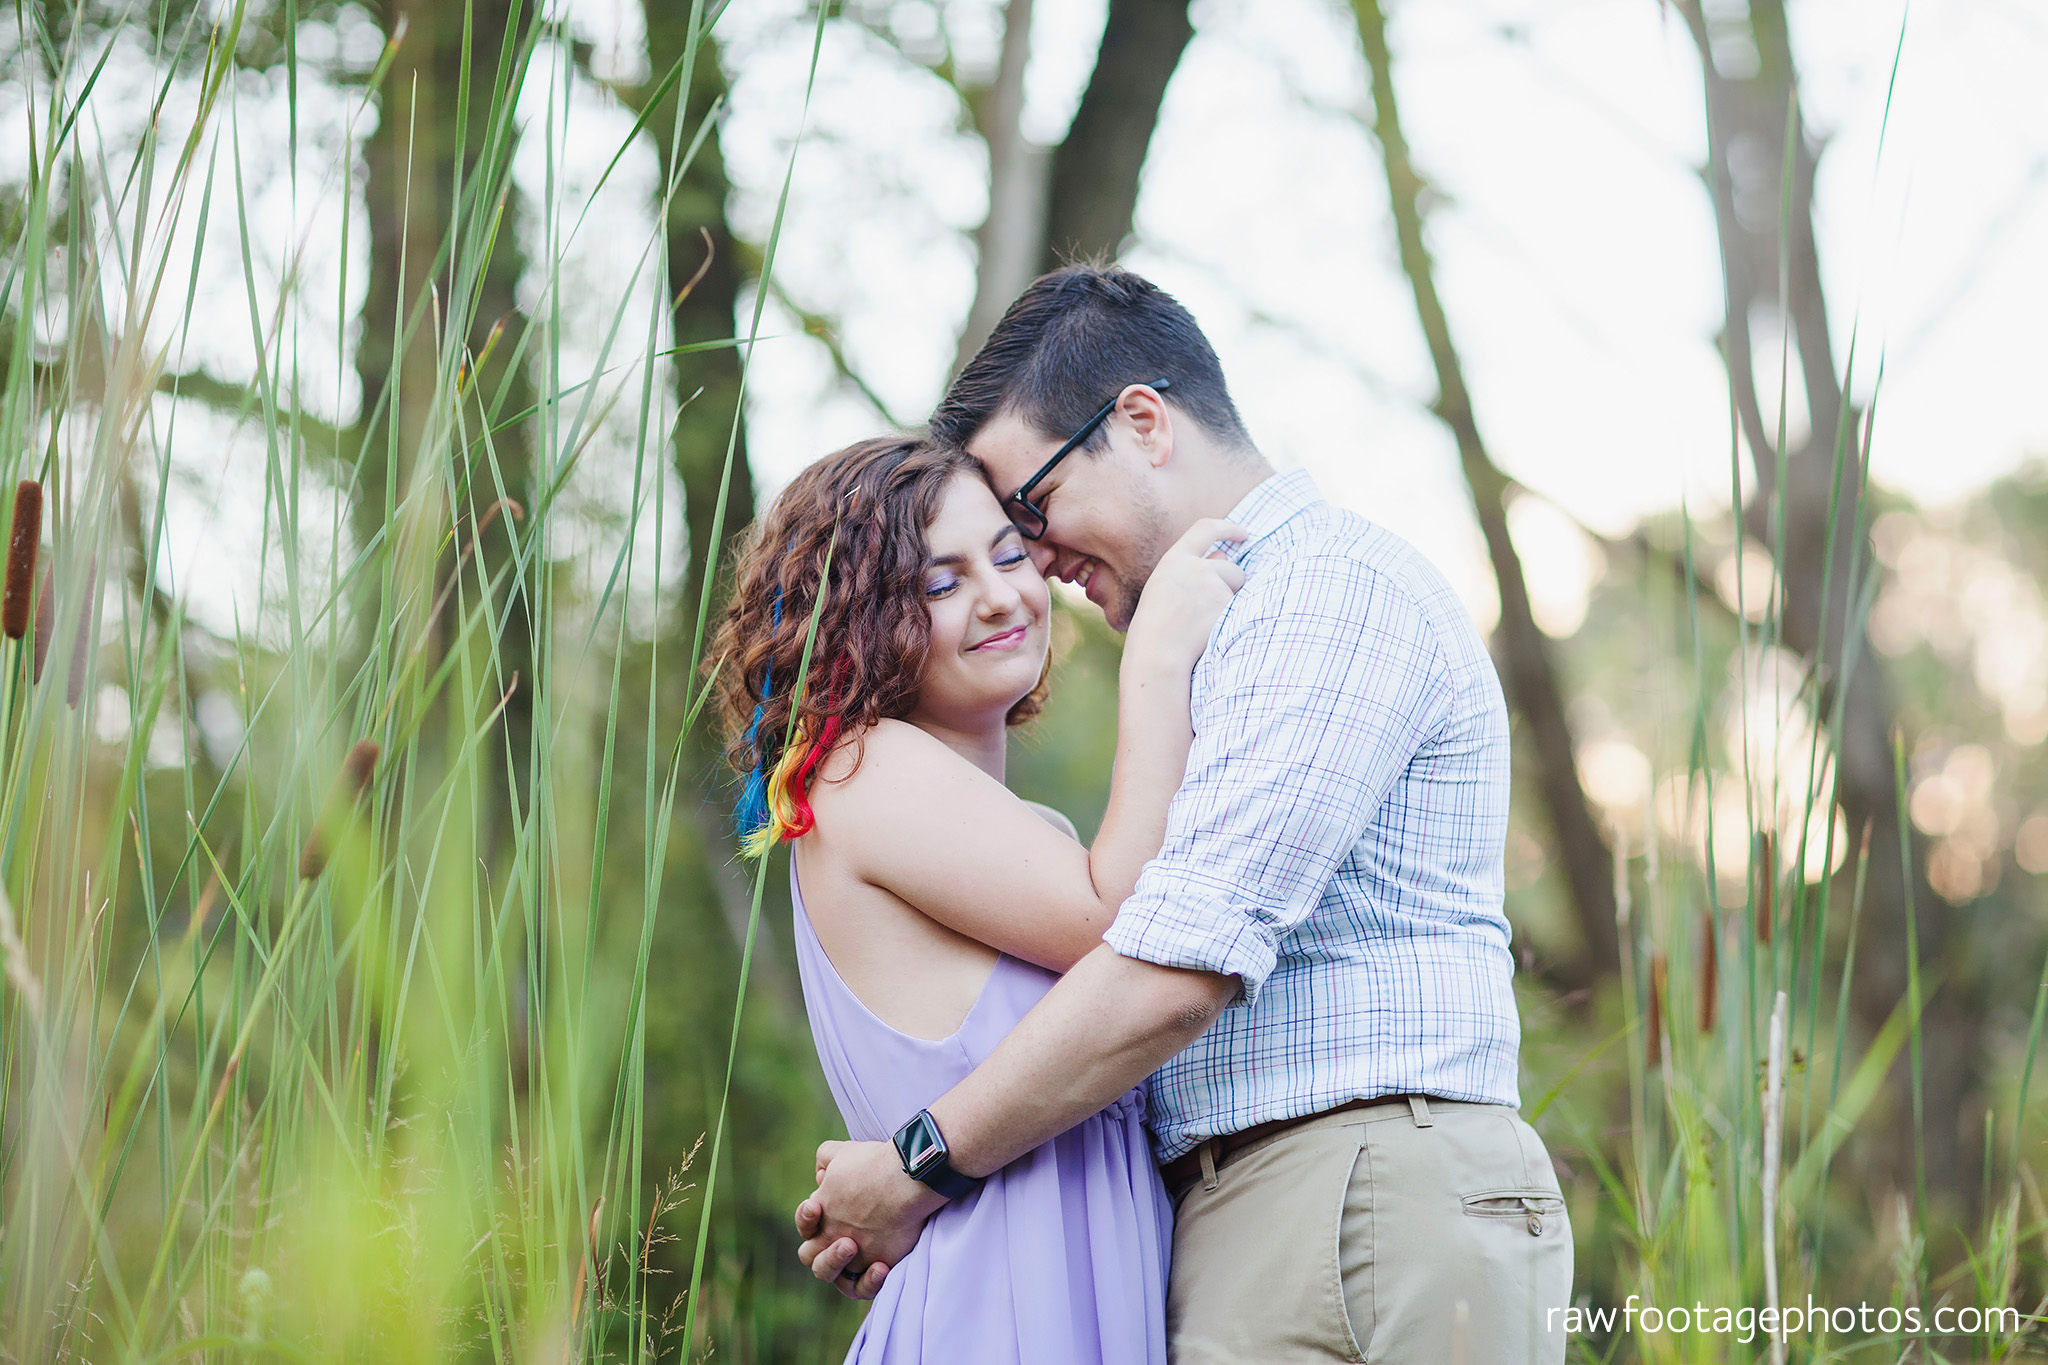 london_ontario_couple_photographer-anniversary_session-raw_footage_photography007.jpg